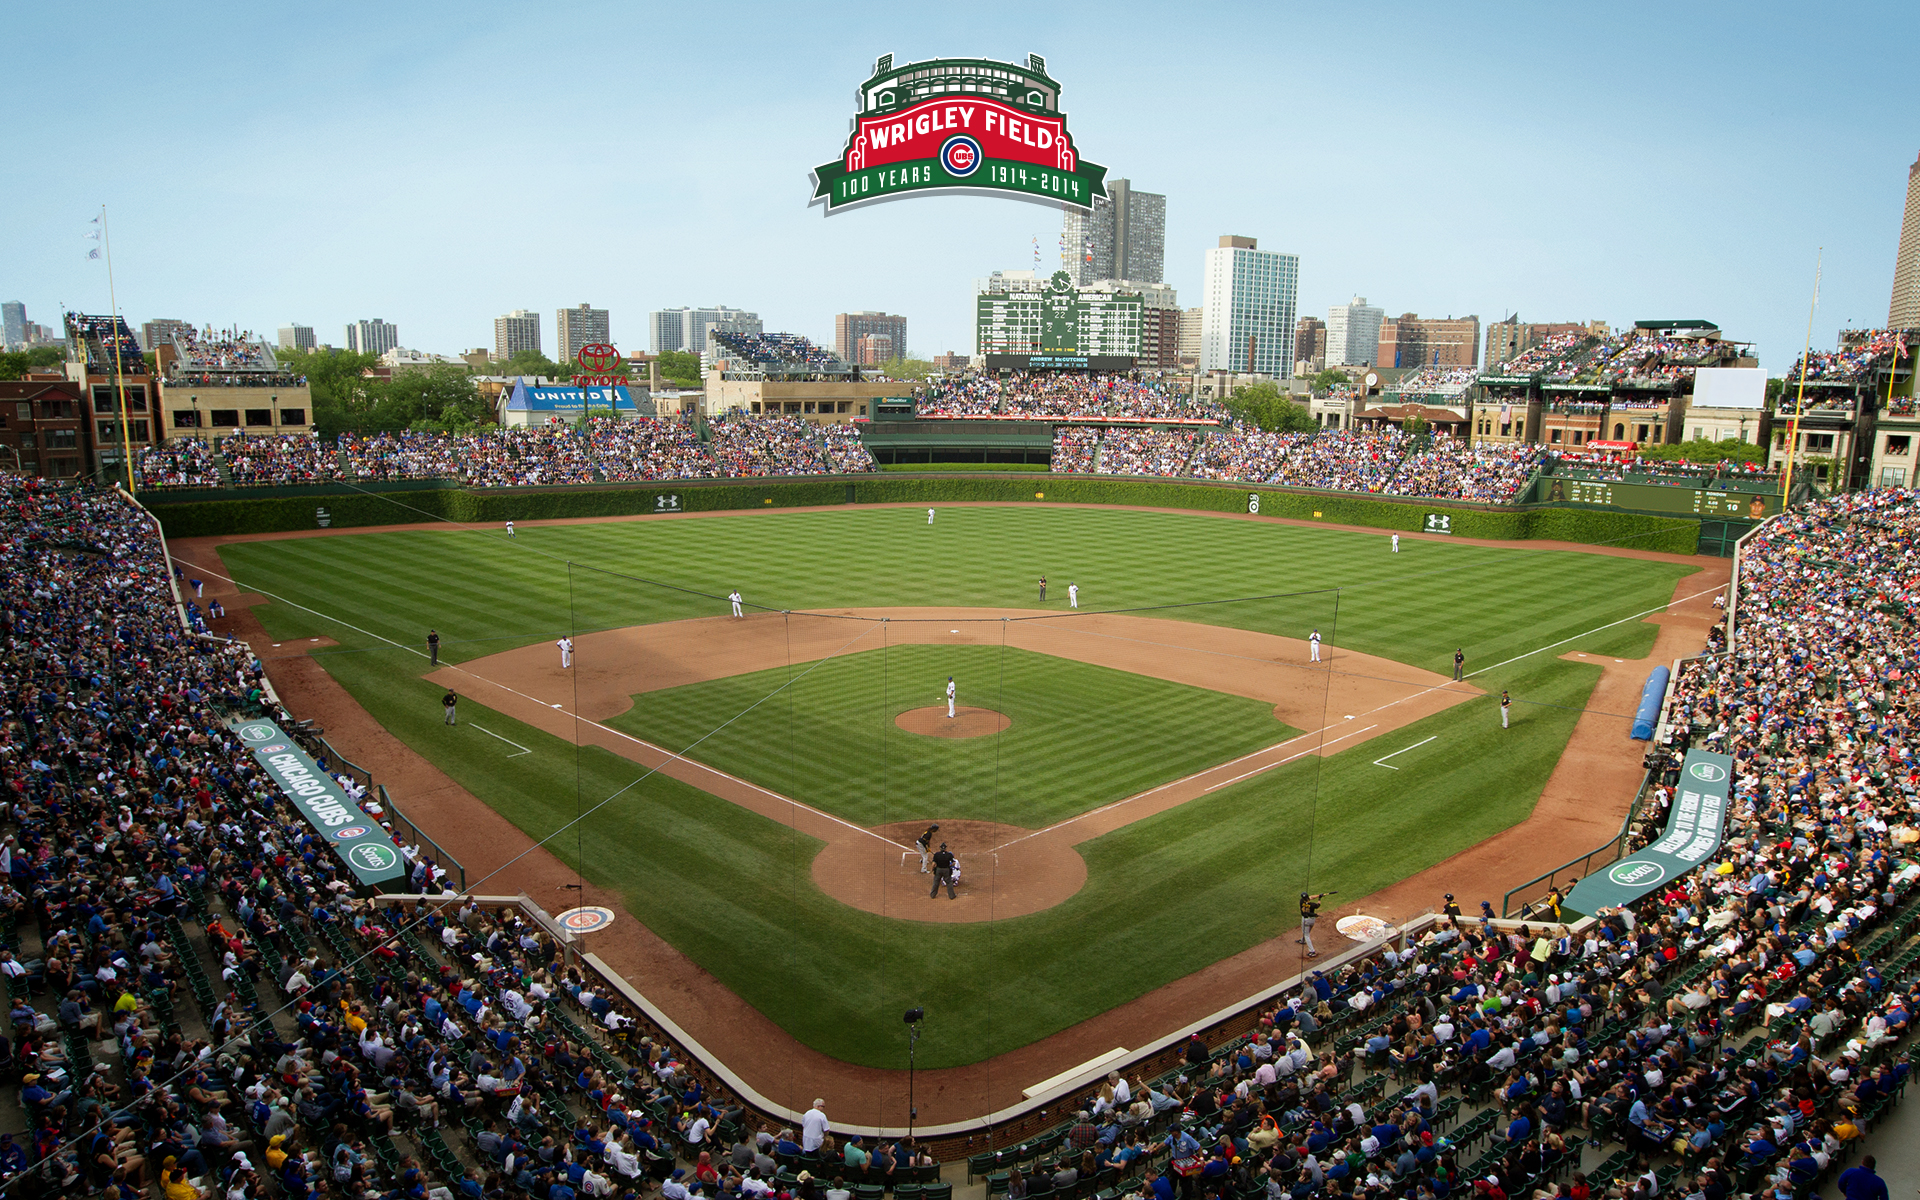 Wrigley field wall mural image collections home wall decoration wrigley field wall mural wall murals ideas wrigley field chicago cubs schedule wallpaper wallpapersafari amipublicfo image amipublicfo Gallery